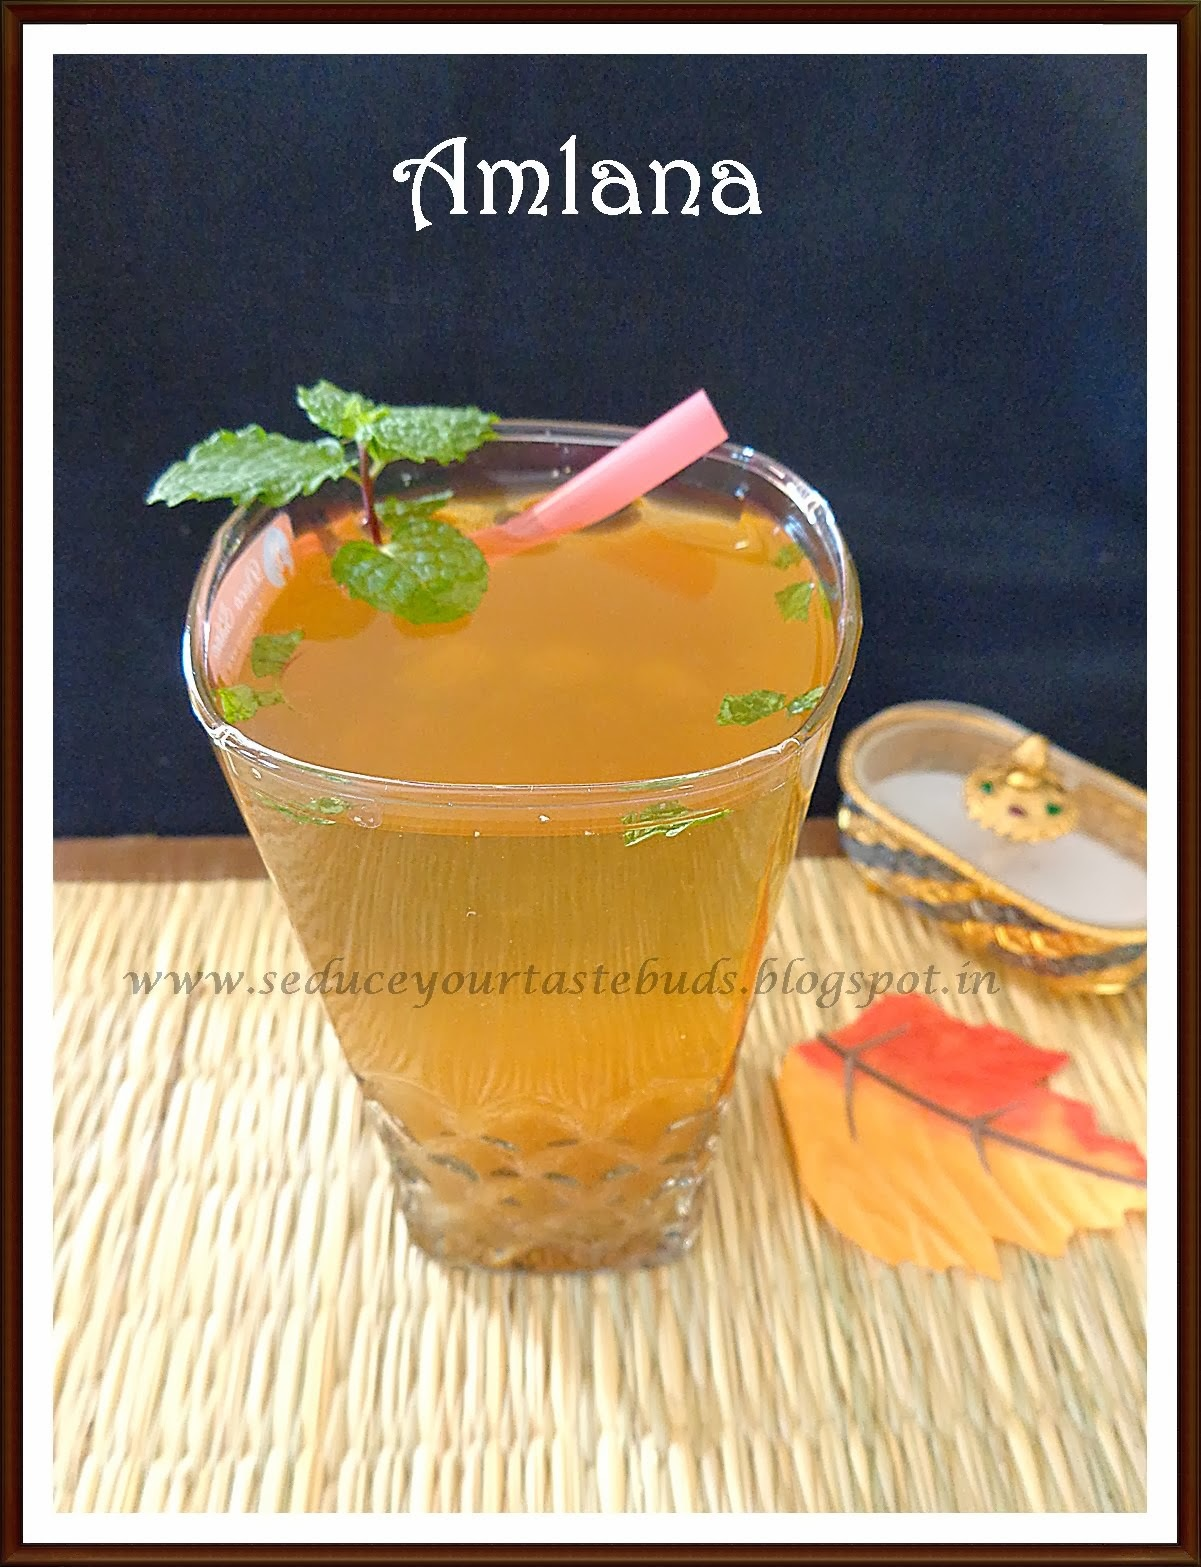 Amlana- Cooling Tamarind Drink from Rajastan